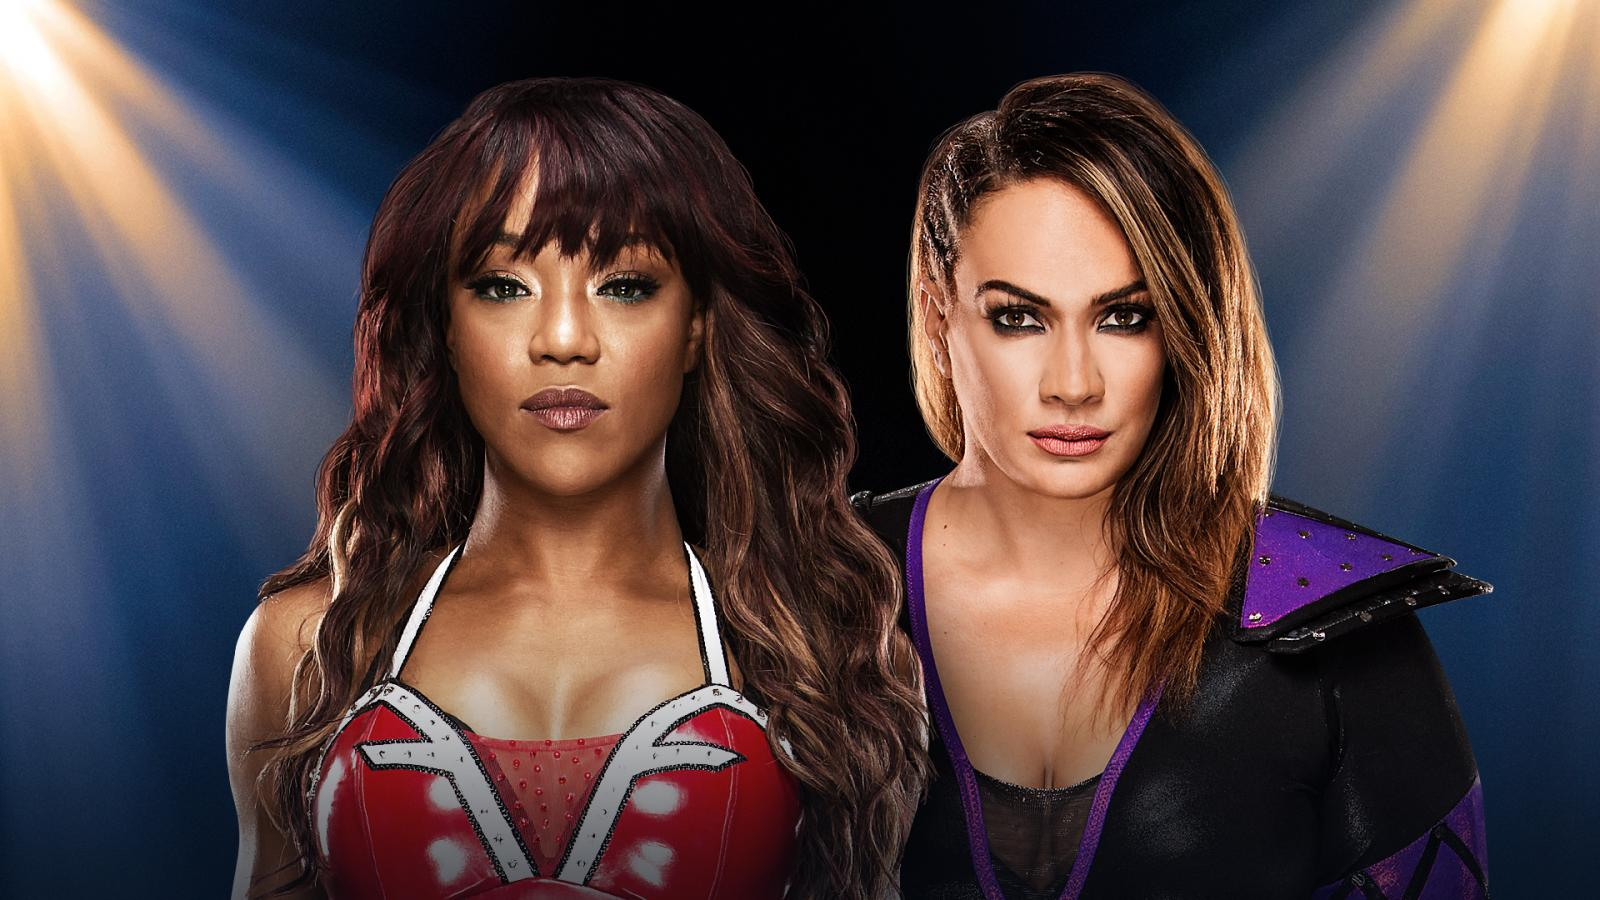 Wrasslin Gods 65: A Little More Alicia and Nia